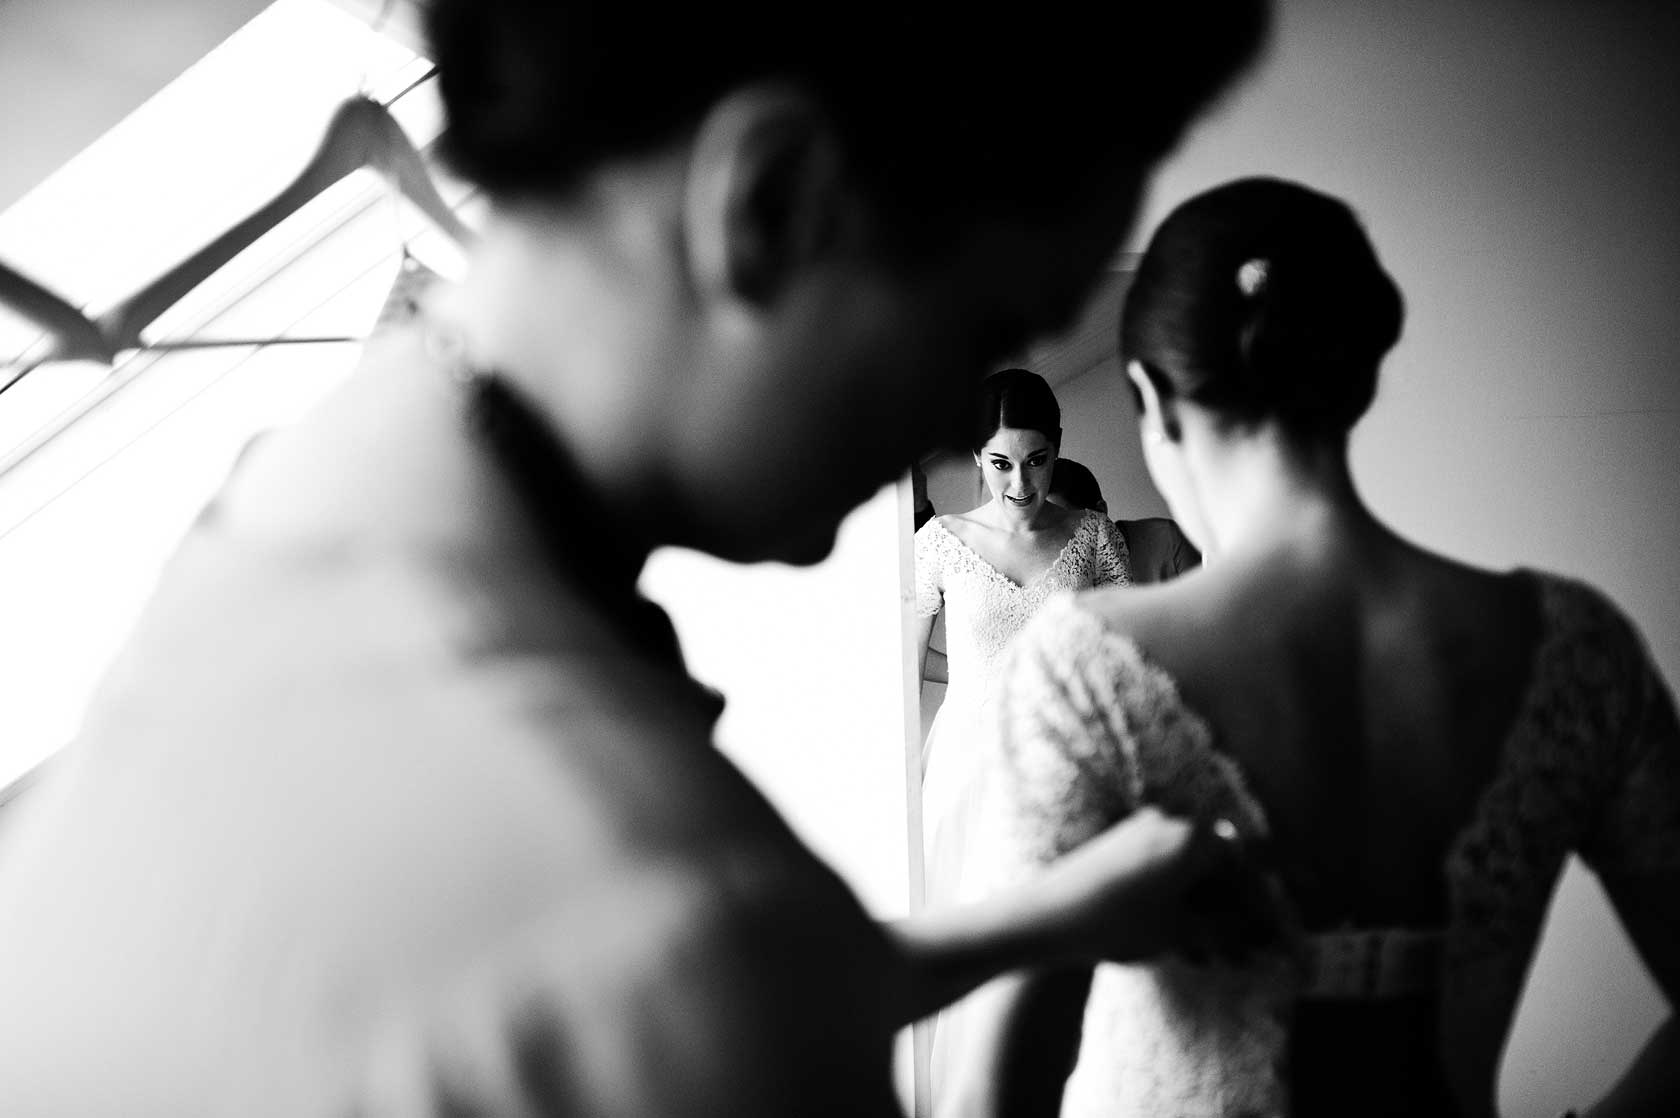 Reportage Wedding Photography at Crear